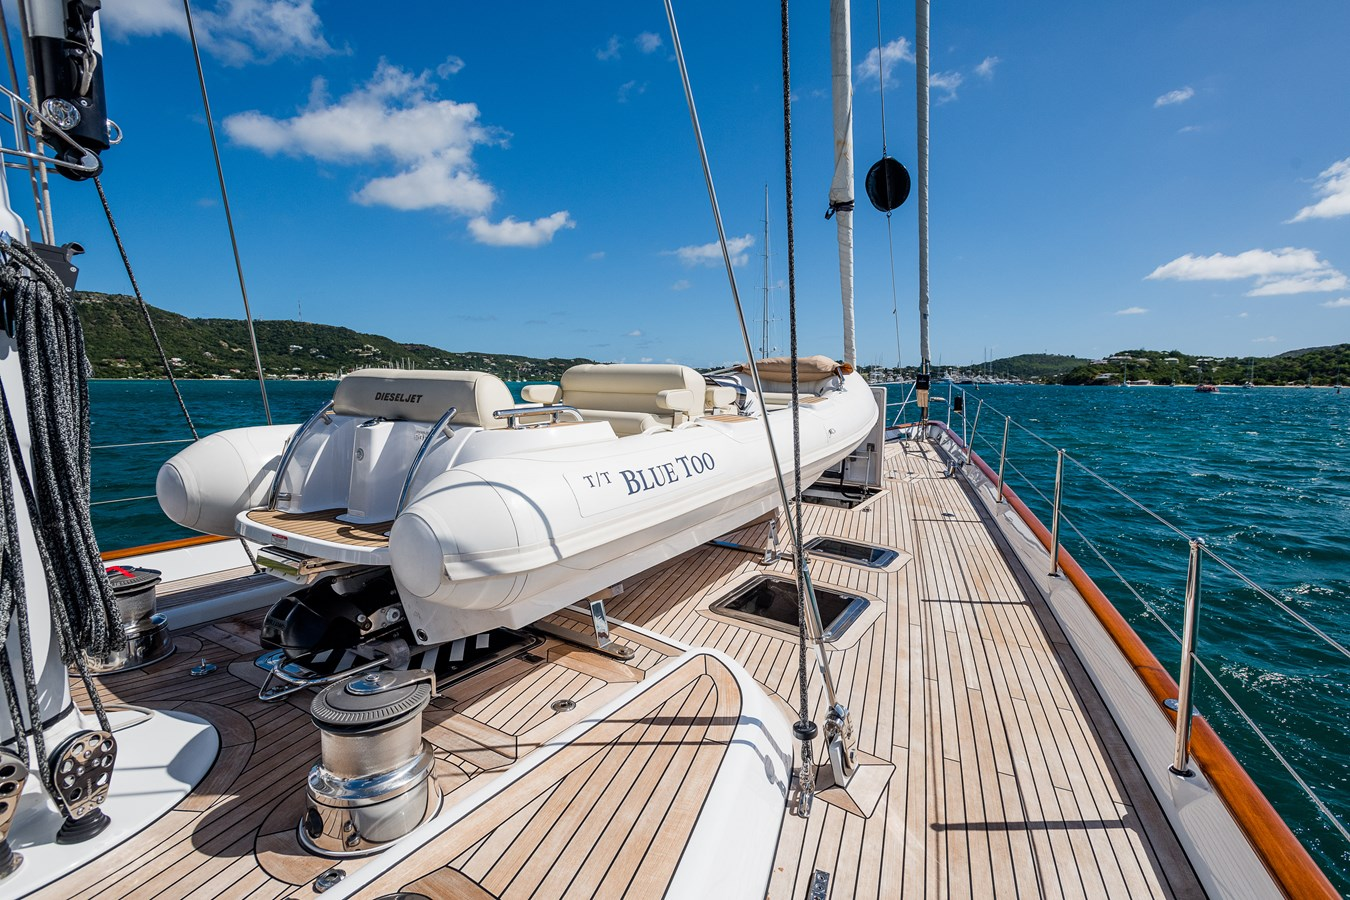 Foredeck with Tender Stowed (Tender Not Included) 1998 ALLOY Sailing Ketch Cruising Ketch 2516617